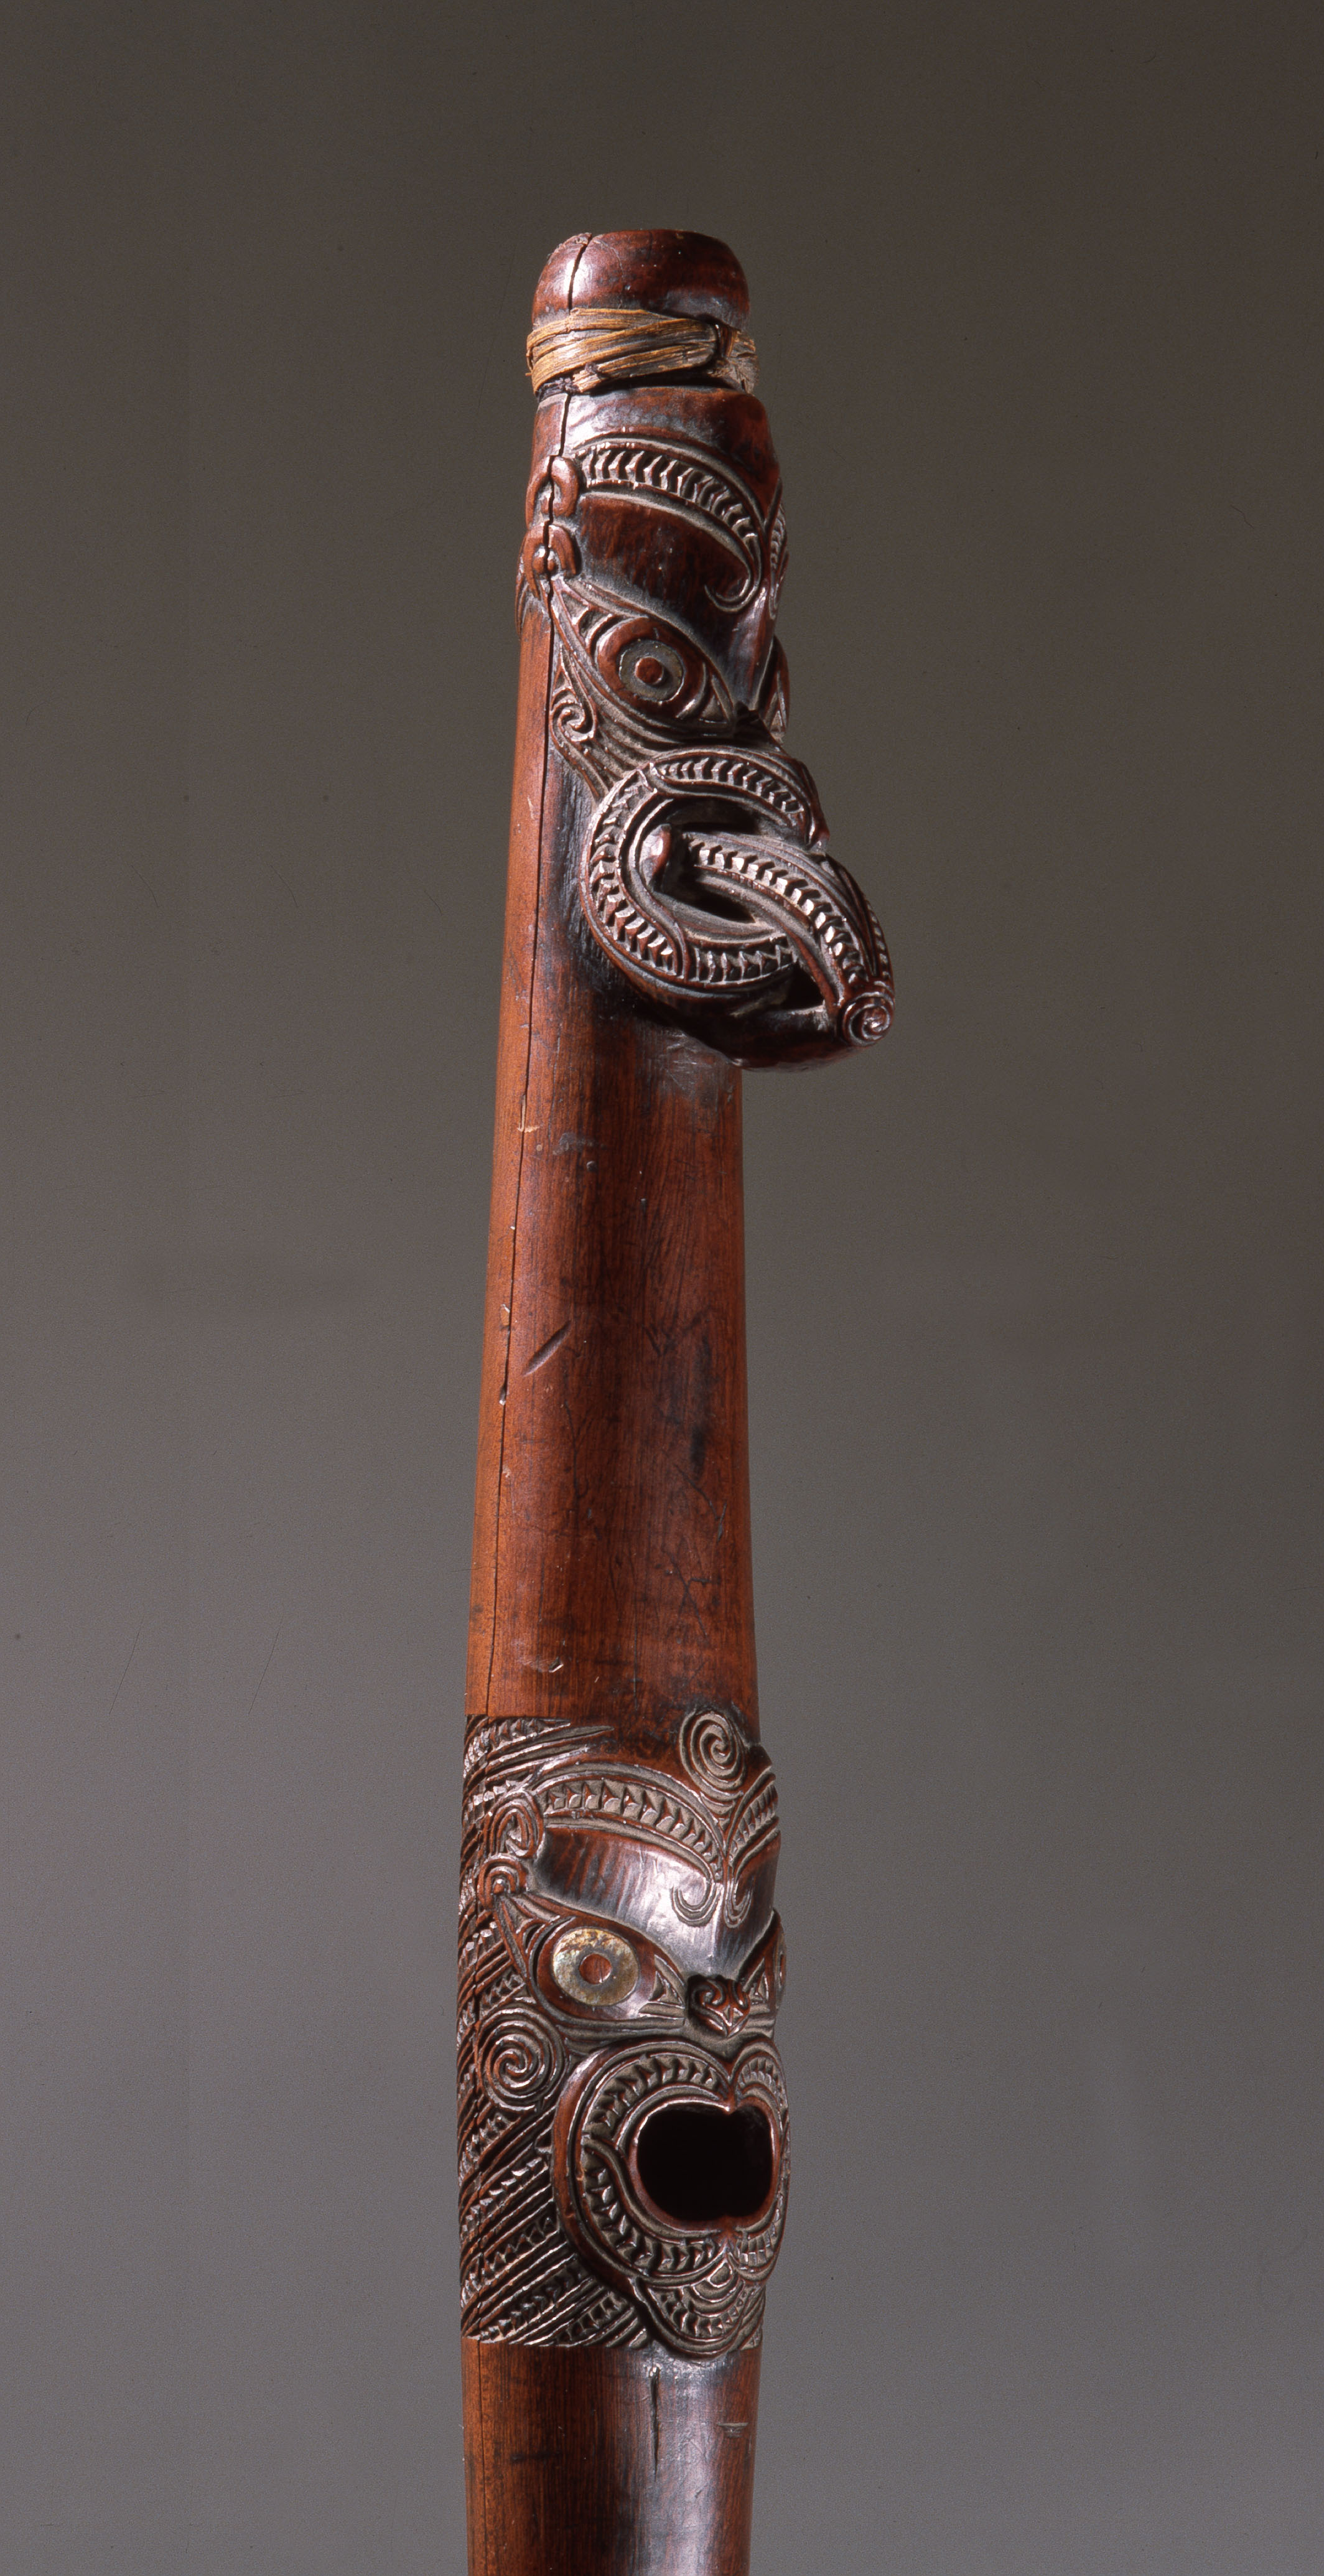 Putorino, or flute trumpet carved with three aggressive faces. It may be played as a flute by blowing across the top, or used as a trumpet, but has only one note, modified by closing the centre hole. Putorino were used to signal the return of a chief to the village or to accompany lyrically sung poems from the Maori's rich oratorical traditions.   18th - 19th century   Inv. #: 55406972 © Werner Forman Archive / Courtesy of Entwistle Gallery, London.